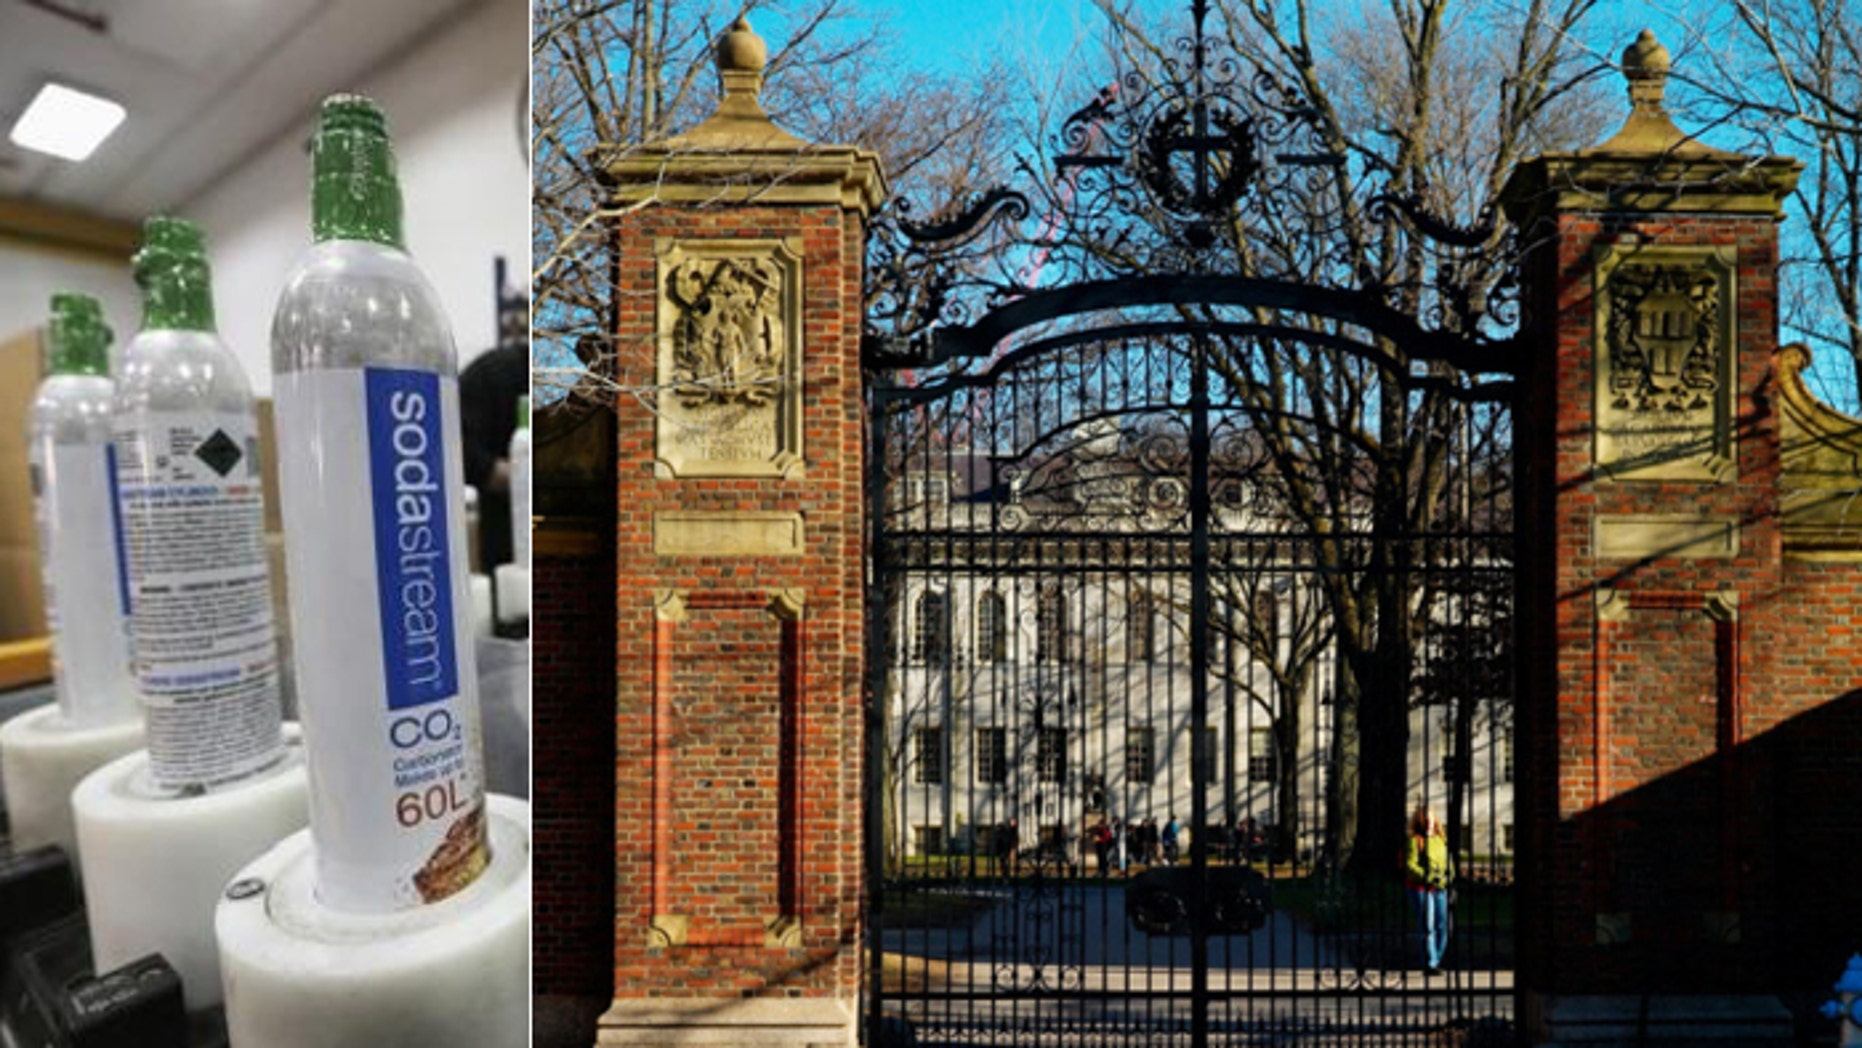 A ban of SodaStream products, lobbied for by pro-Palestinian students, was reversed by Harvard's top brass. (Reuters, AP)